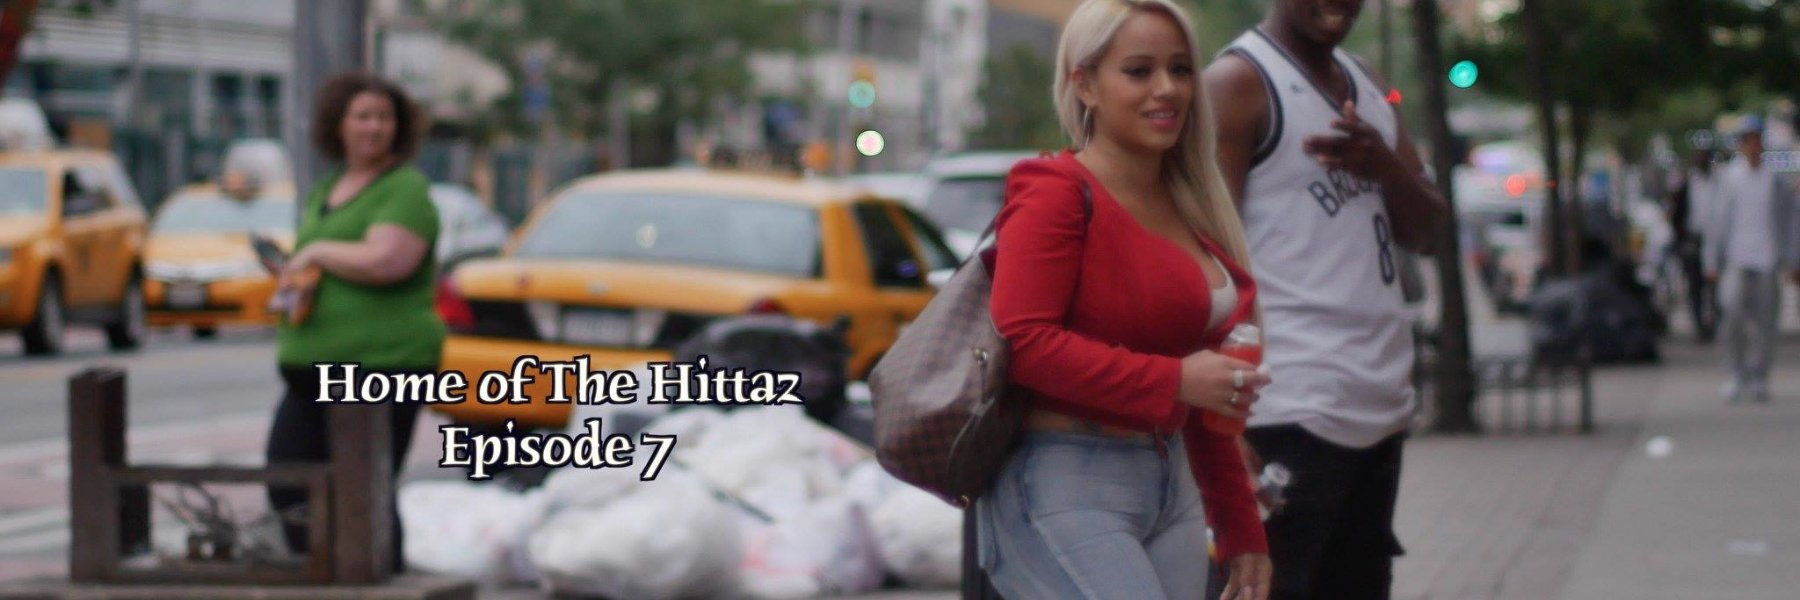 Home of the HIttaz Season 3 episode 2 episode 7